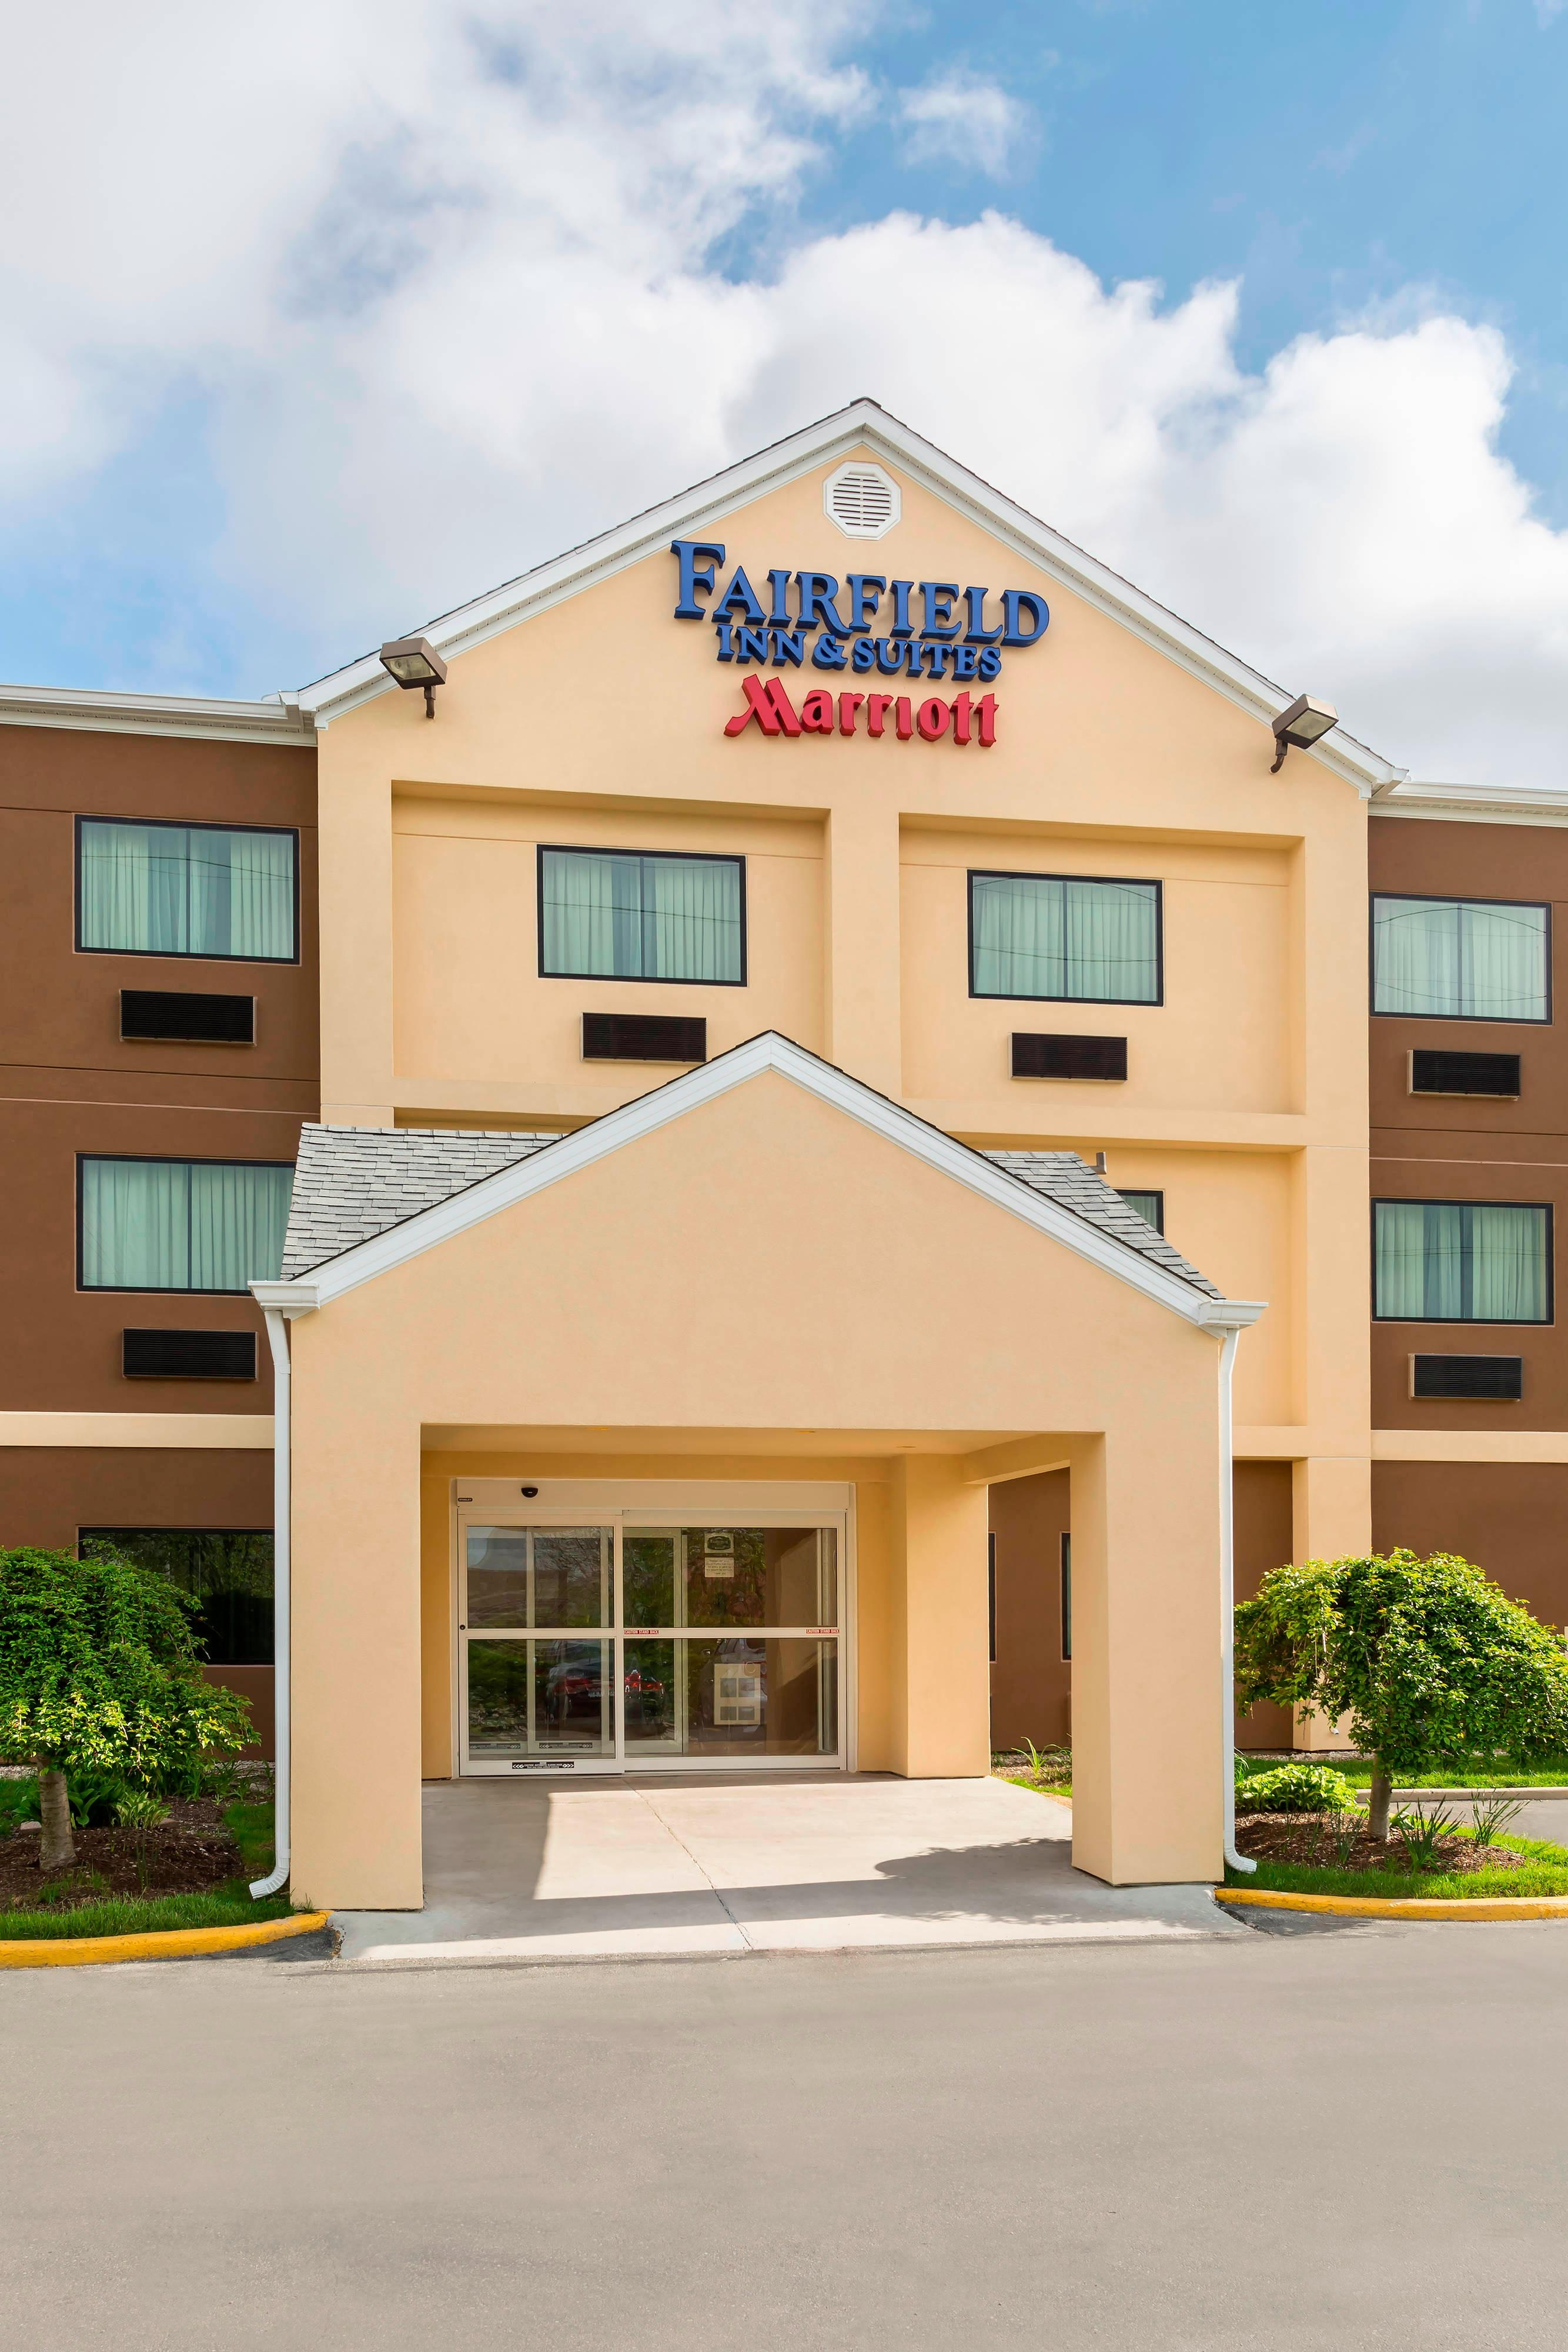 Exterior of Fairfield Inn & Suites Springfield